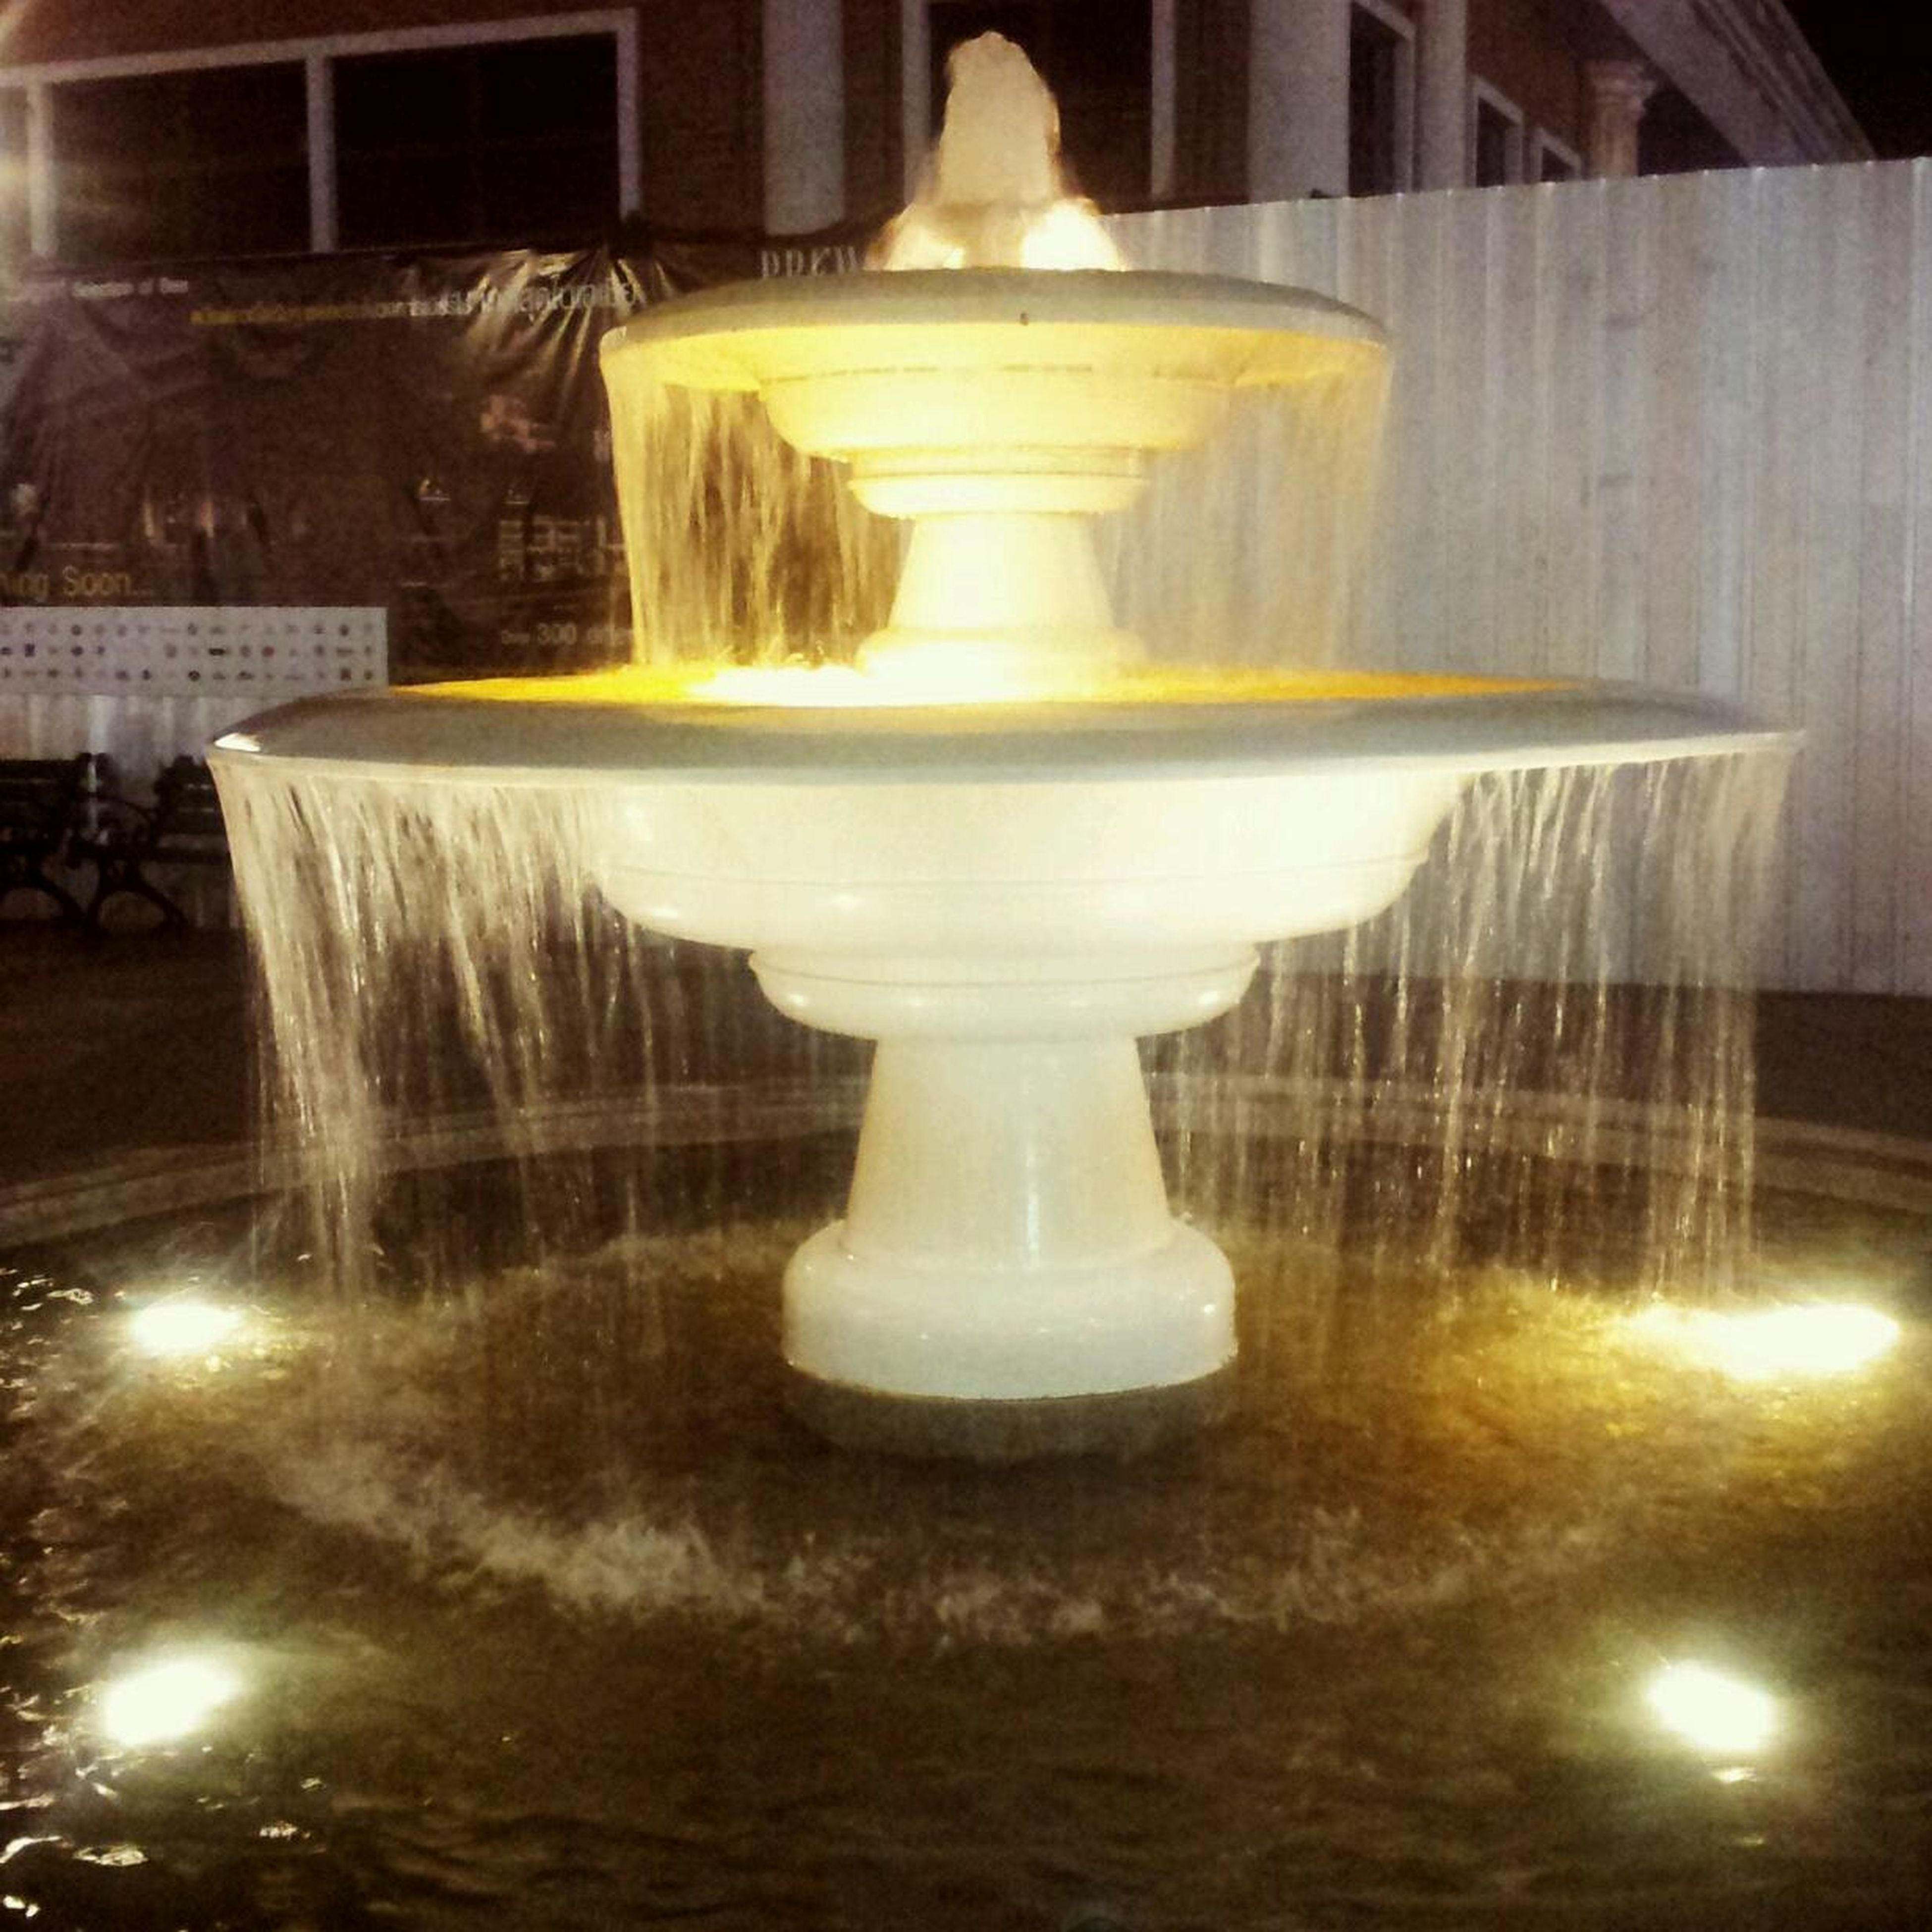 illuminated, indoors, reflection, fountain, water, lighting equipment, night, glowing, motion, lit, light - natural phenomenon, no people, religion, candle, spirituality, waterfront, in a row, art and craft, splashing, long exposure